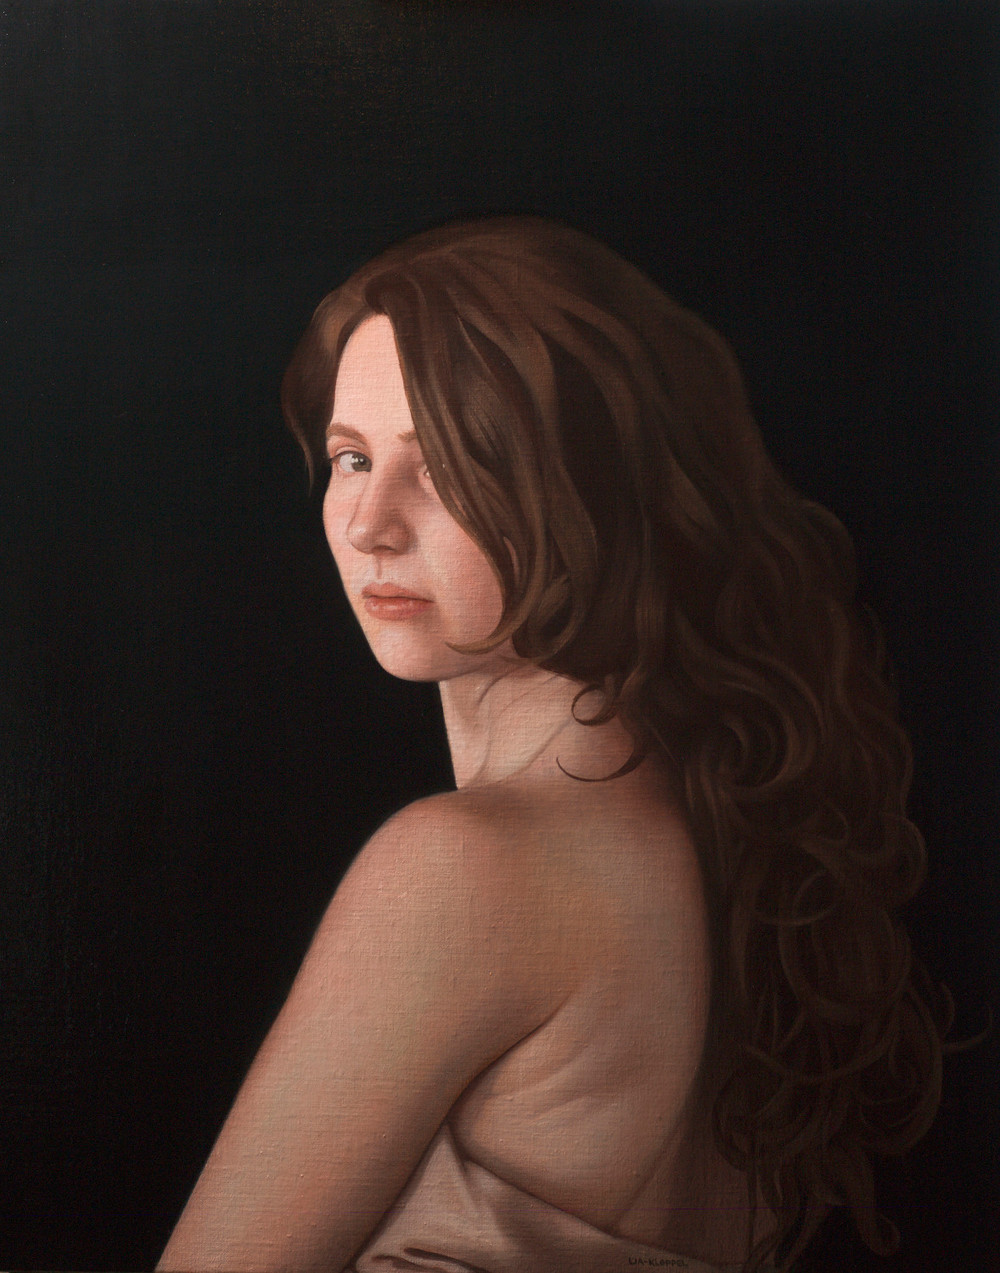 Julie Looking Back , 2015, Oil on linen, 24 x 20 inches